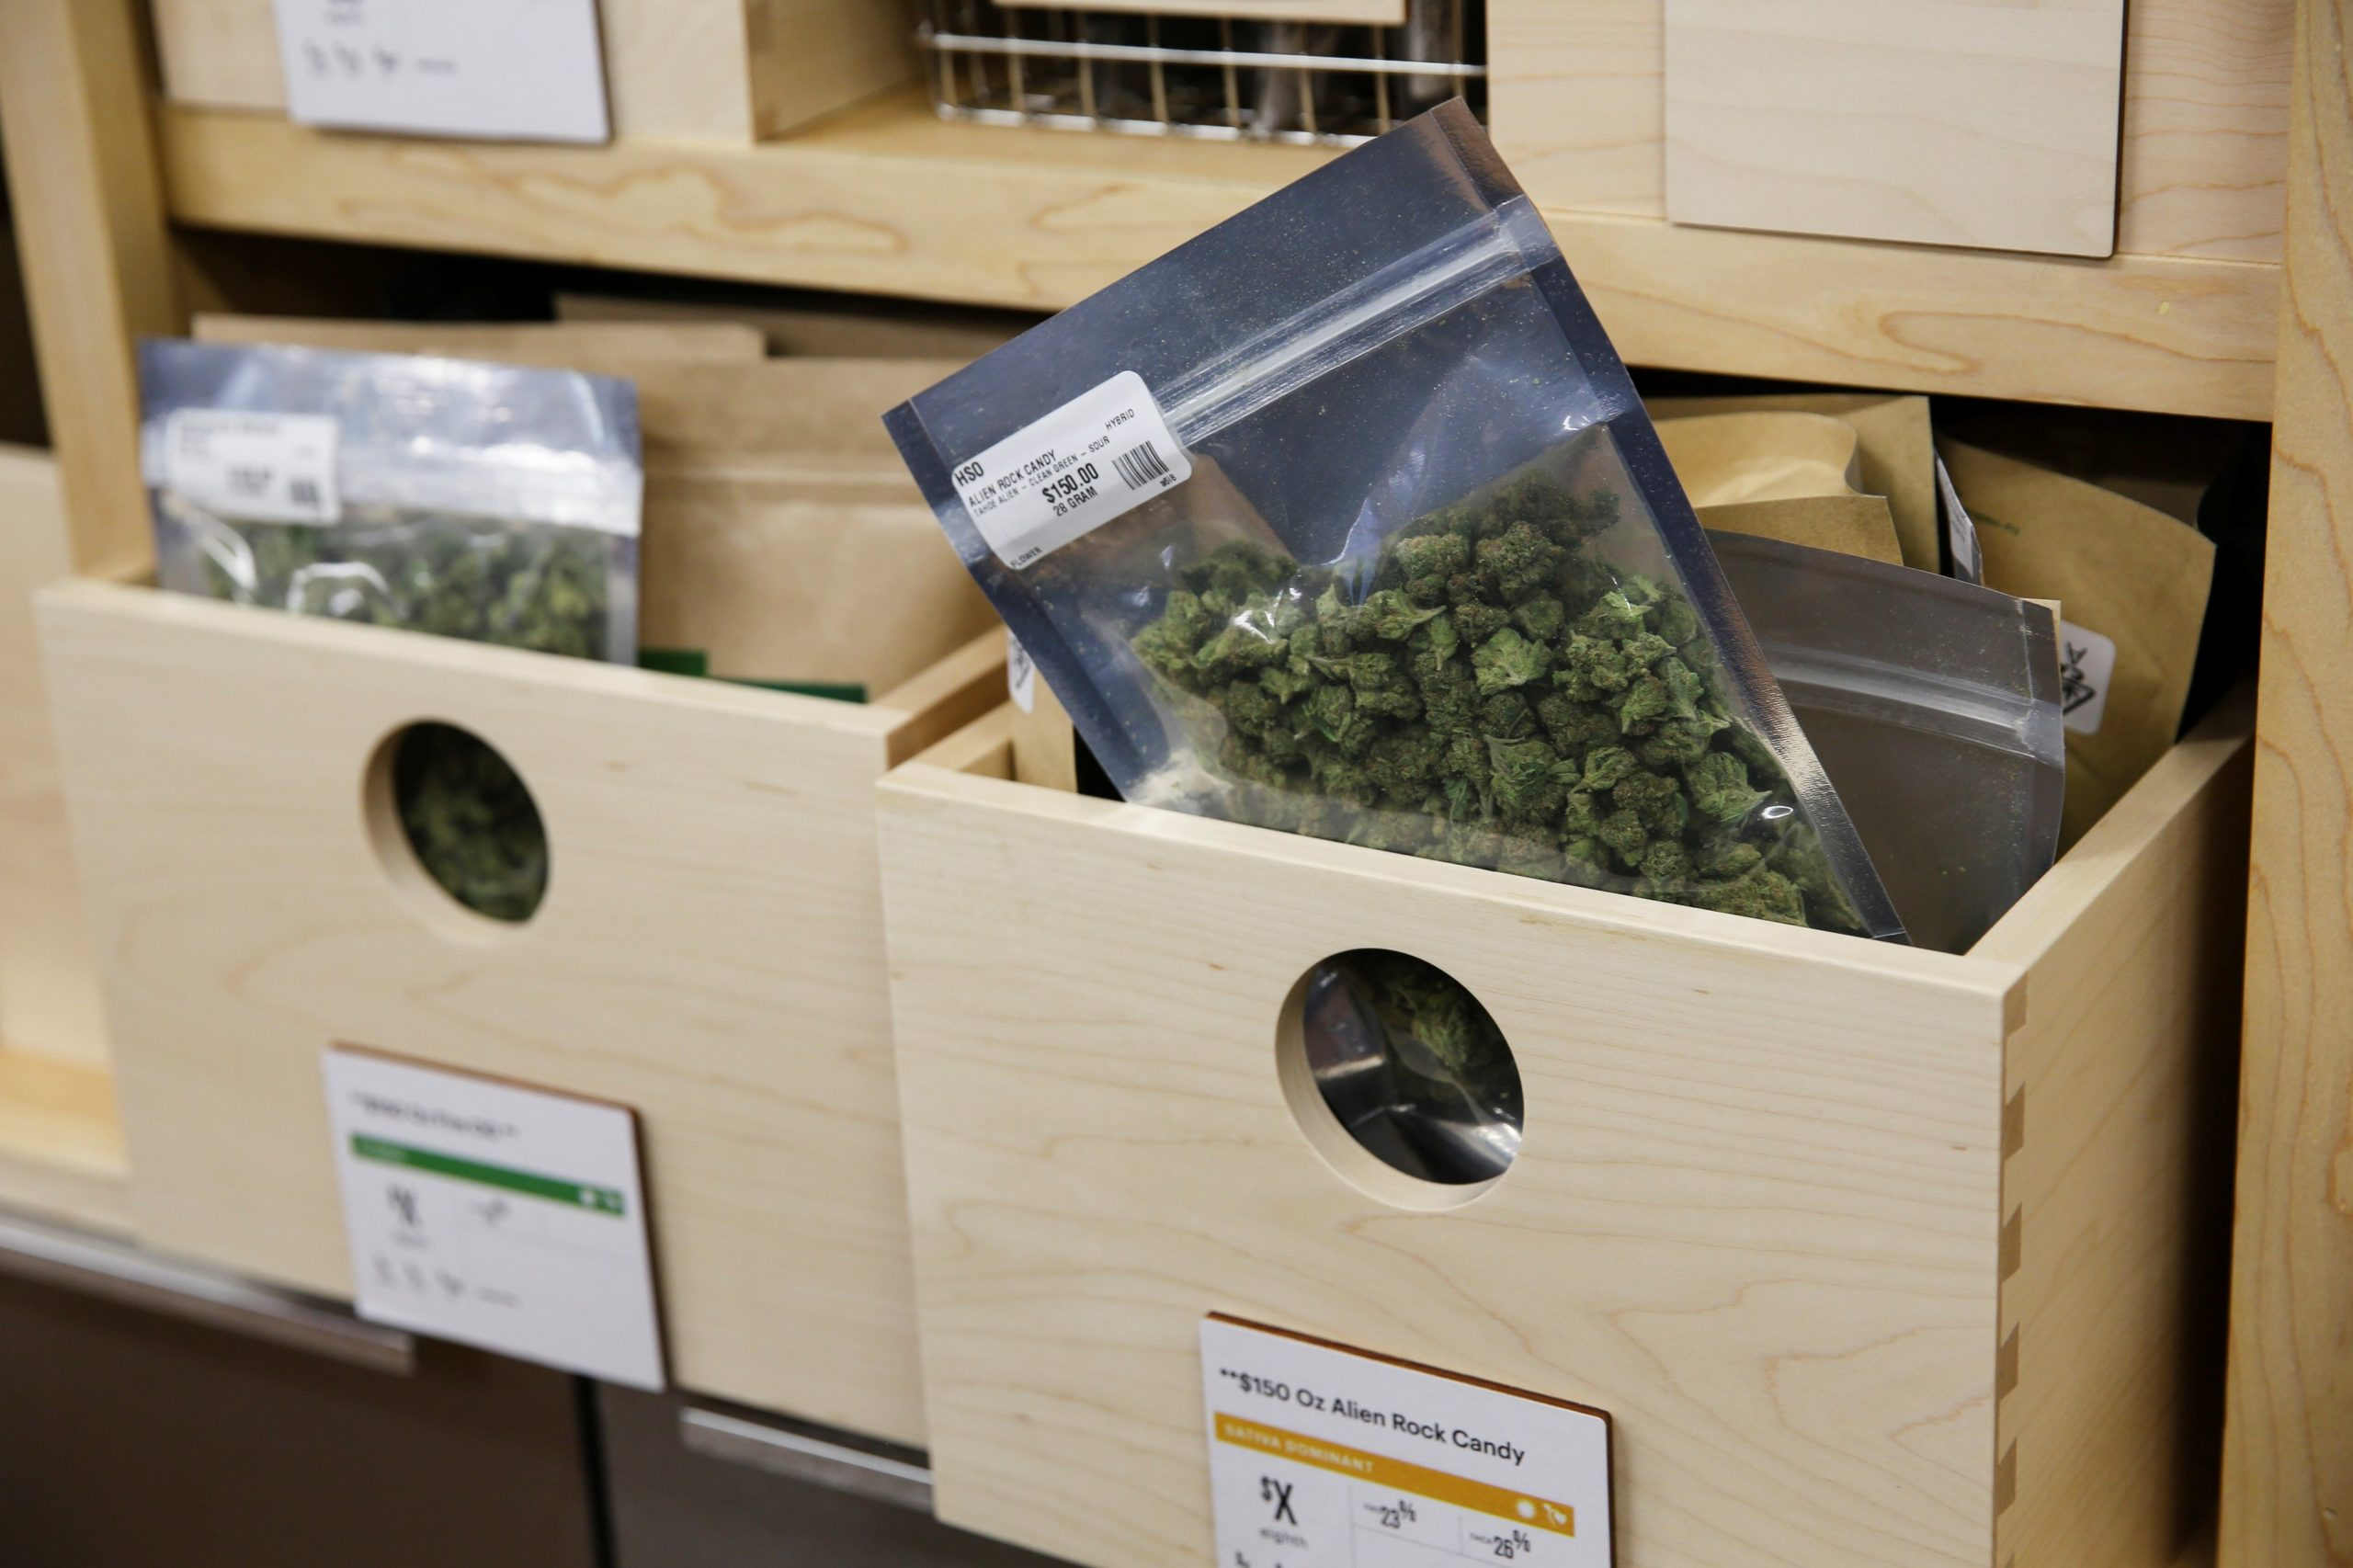 """An easy fix could give the marijuana industry access to banking - """"Banks will one day have to face the question of whether state and local governments, which receive tax revenue from cannabis, should be subject to reporting or de-banking"""""""